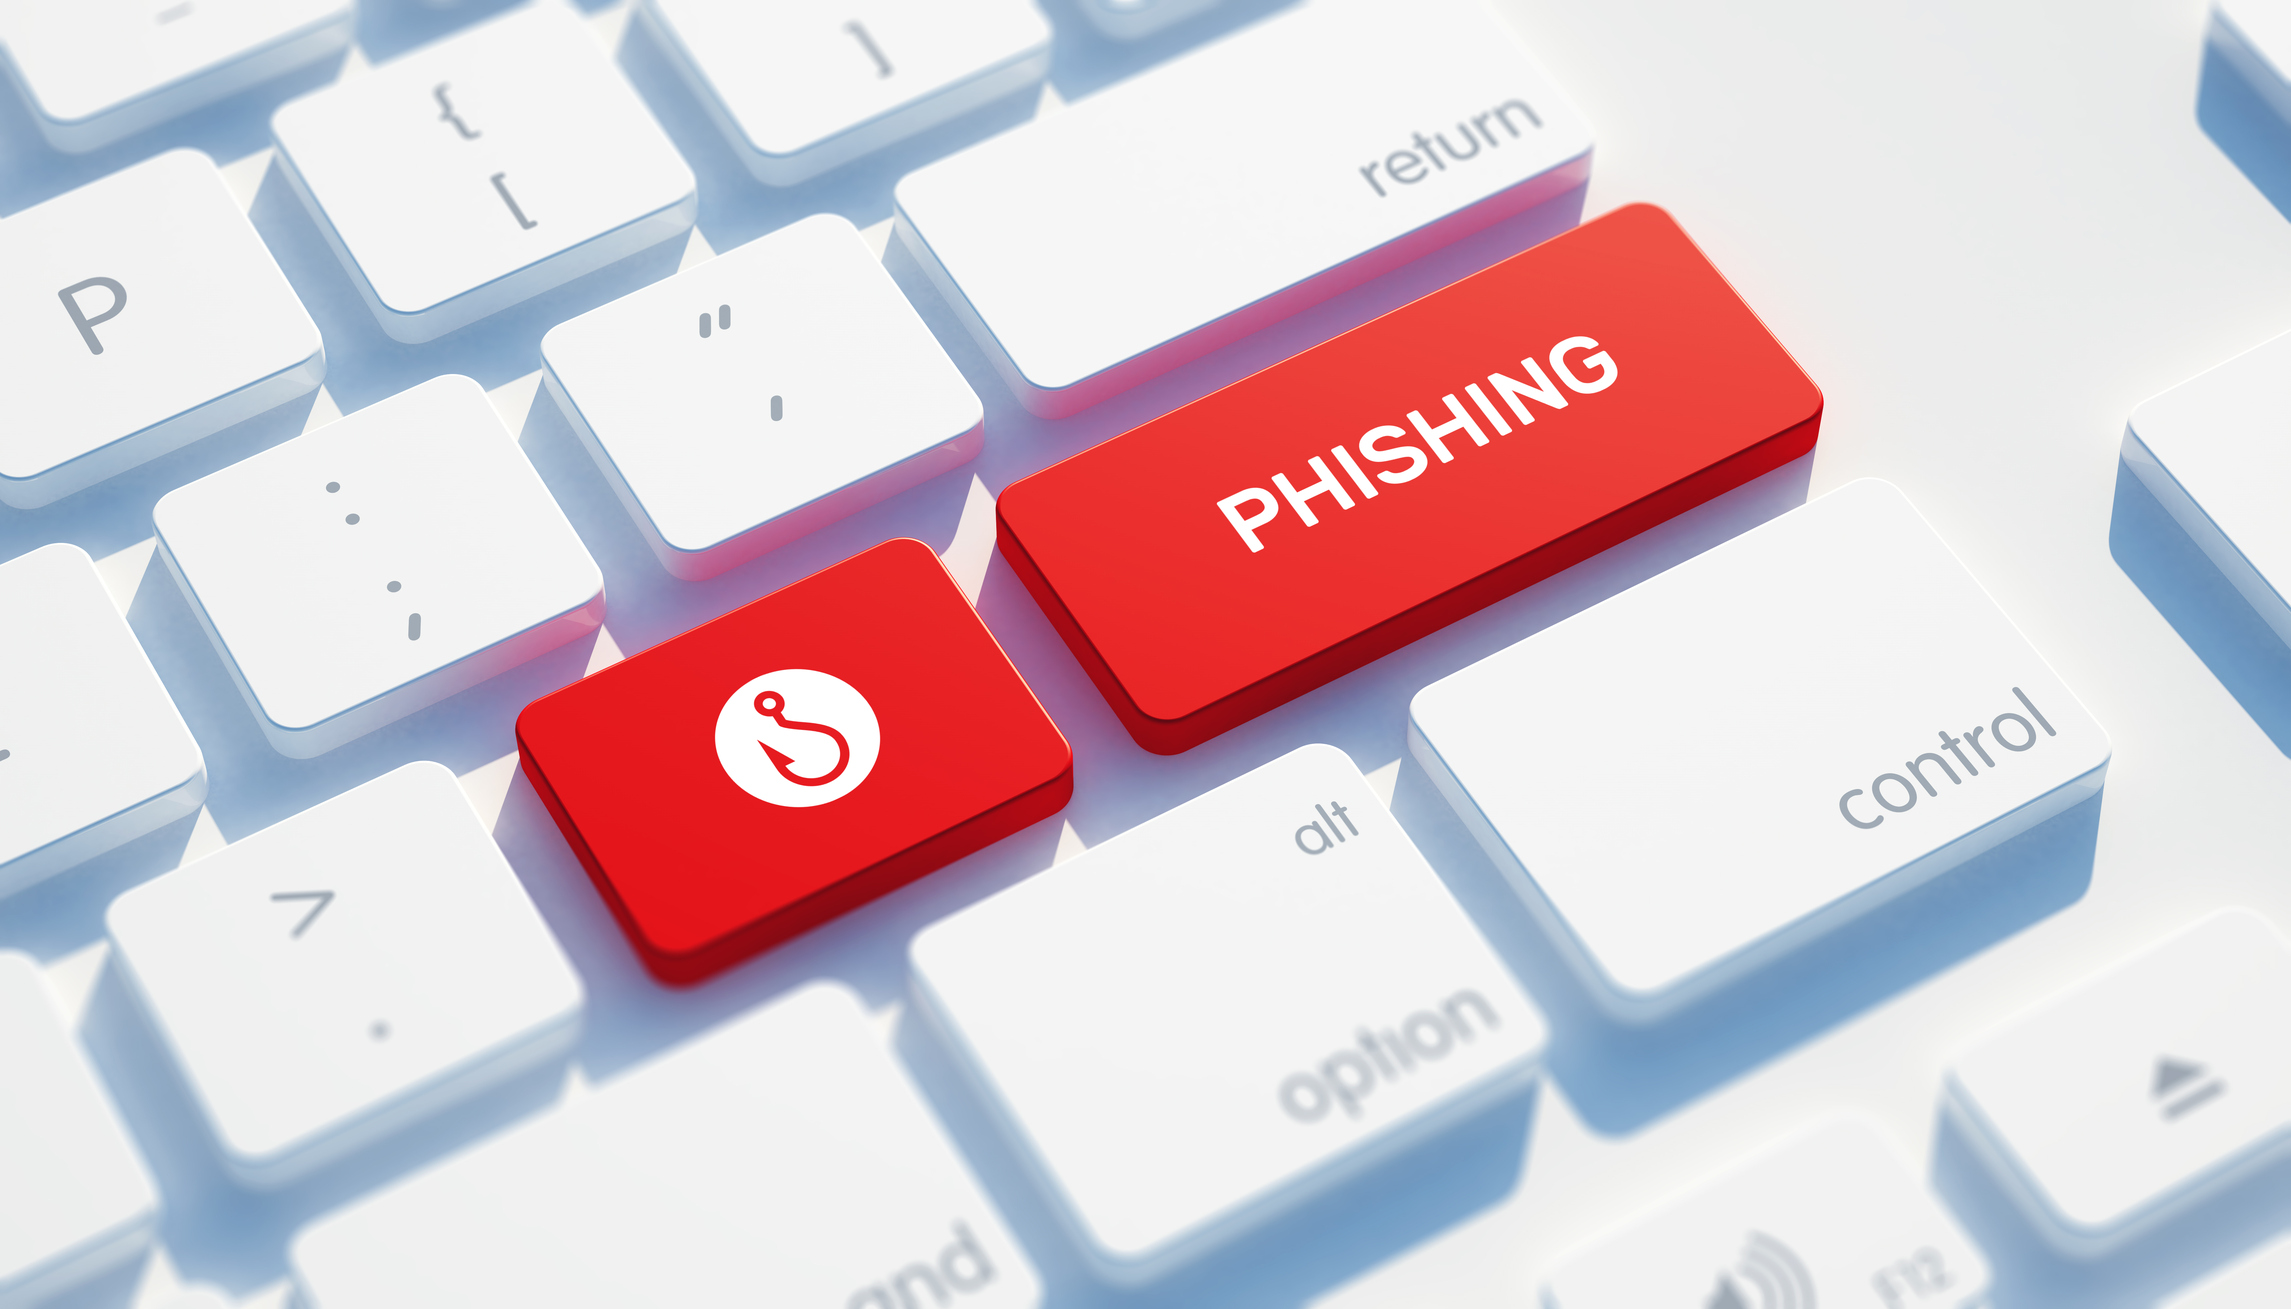 Security Update: Office 365 Phishing Attempts